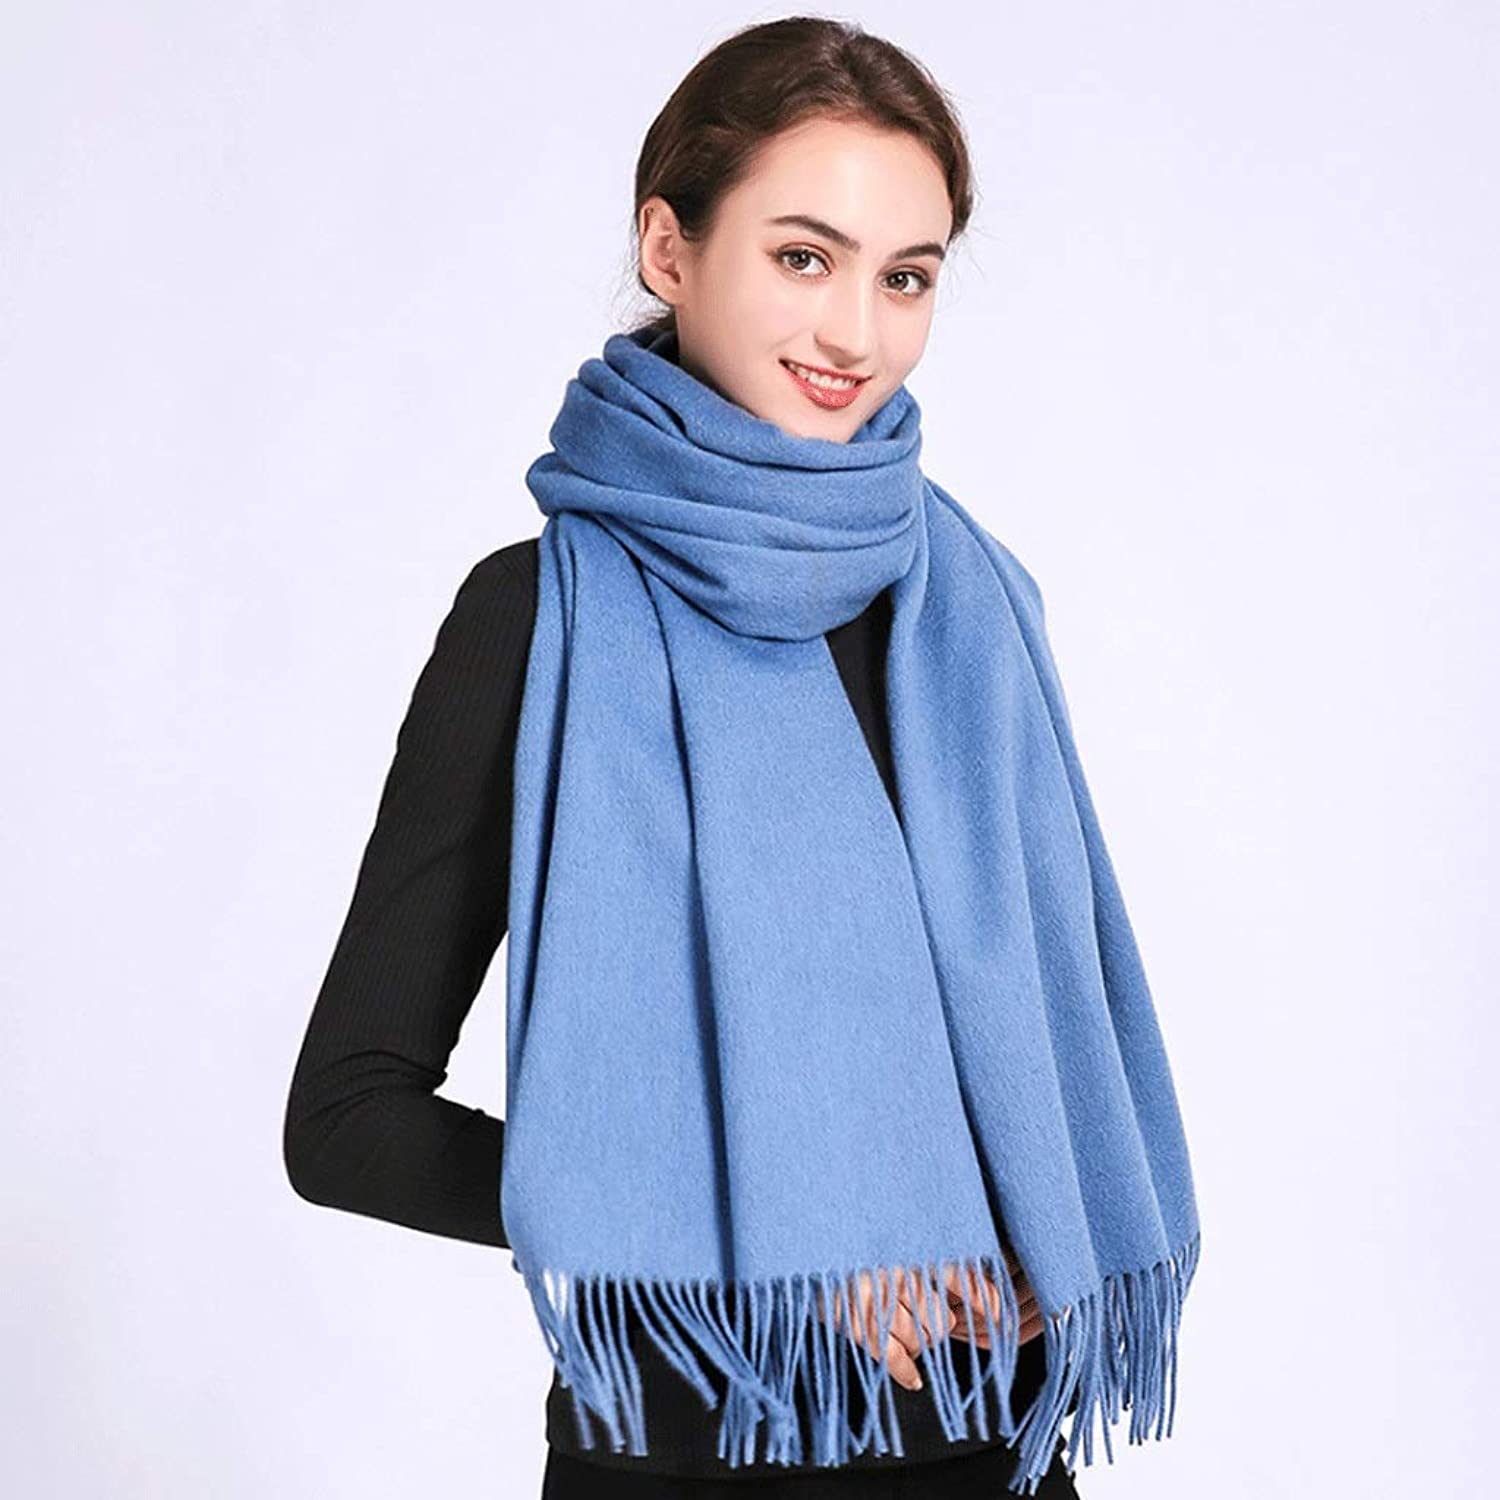 CCF Scarf Thick Scarves Simple color Spring, Autumn and Winter Can Be Used 200x70CM Both Men and Women are Available V (color   bluee)